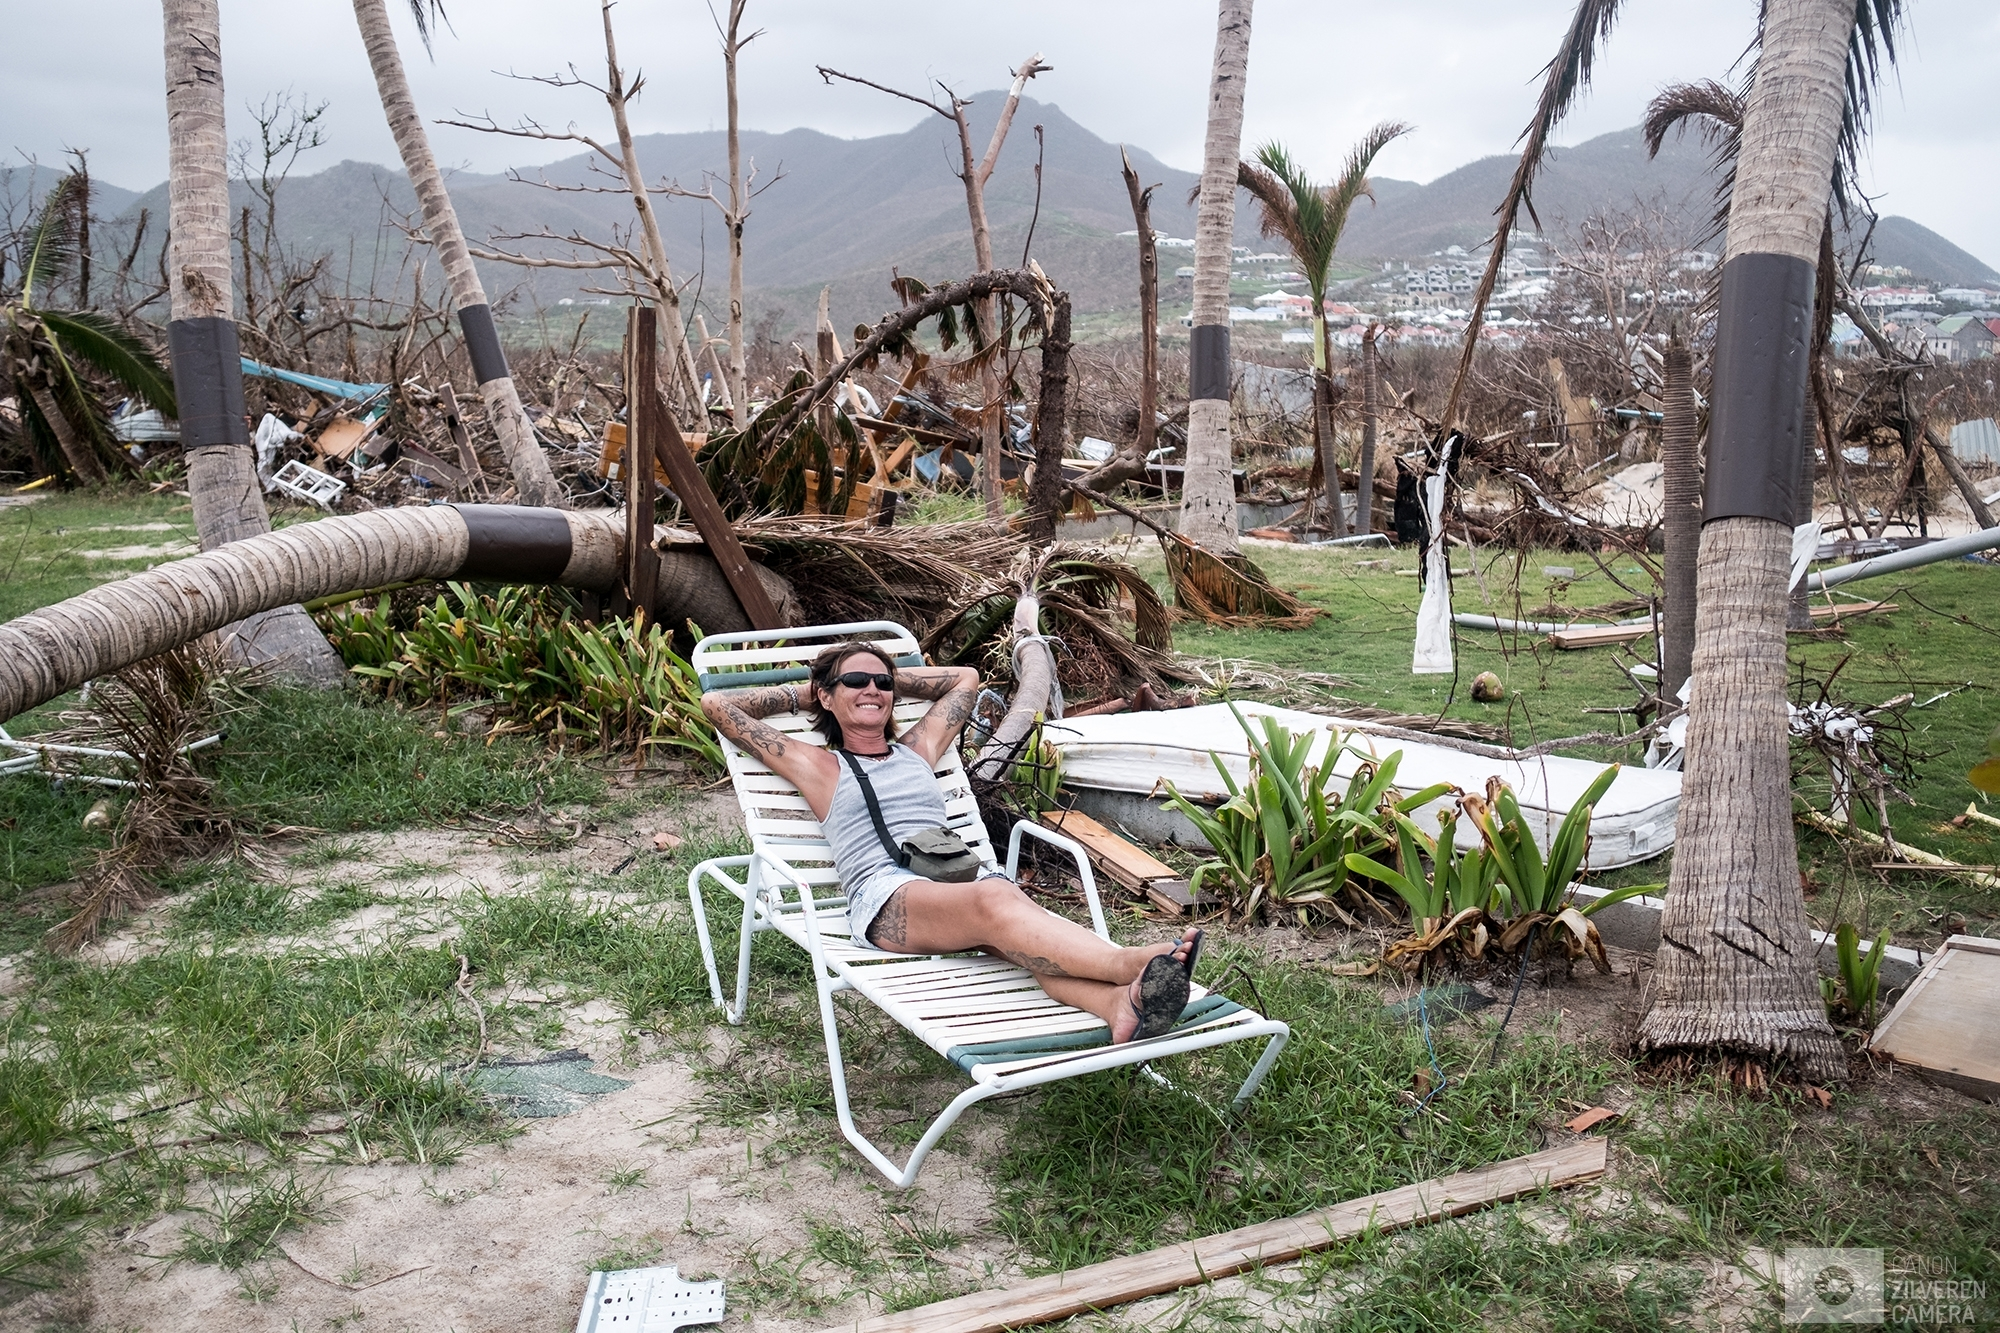 SINT MAARTEN | A woman is taking a rest while scavaging a former nudist beach, now totally in ruins, for usefull parts to repair her house. | #2